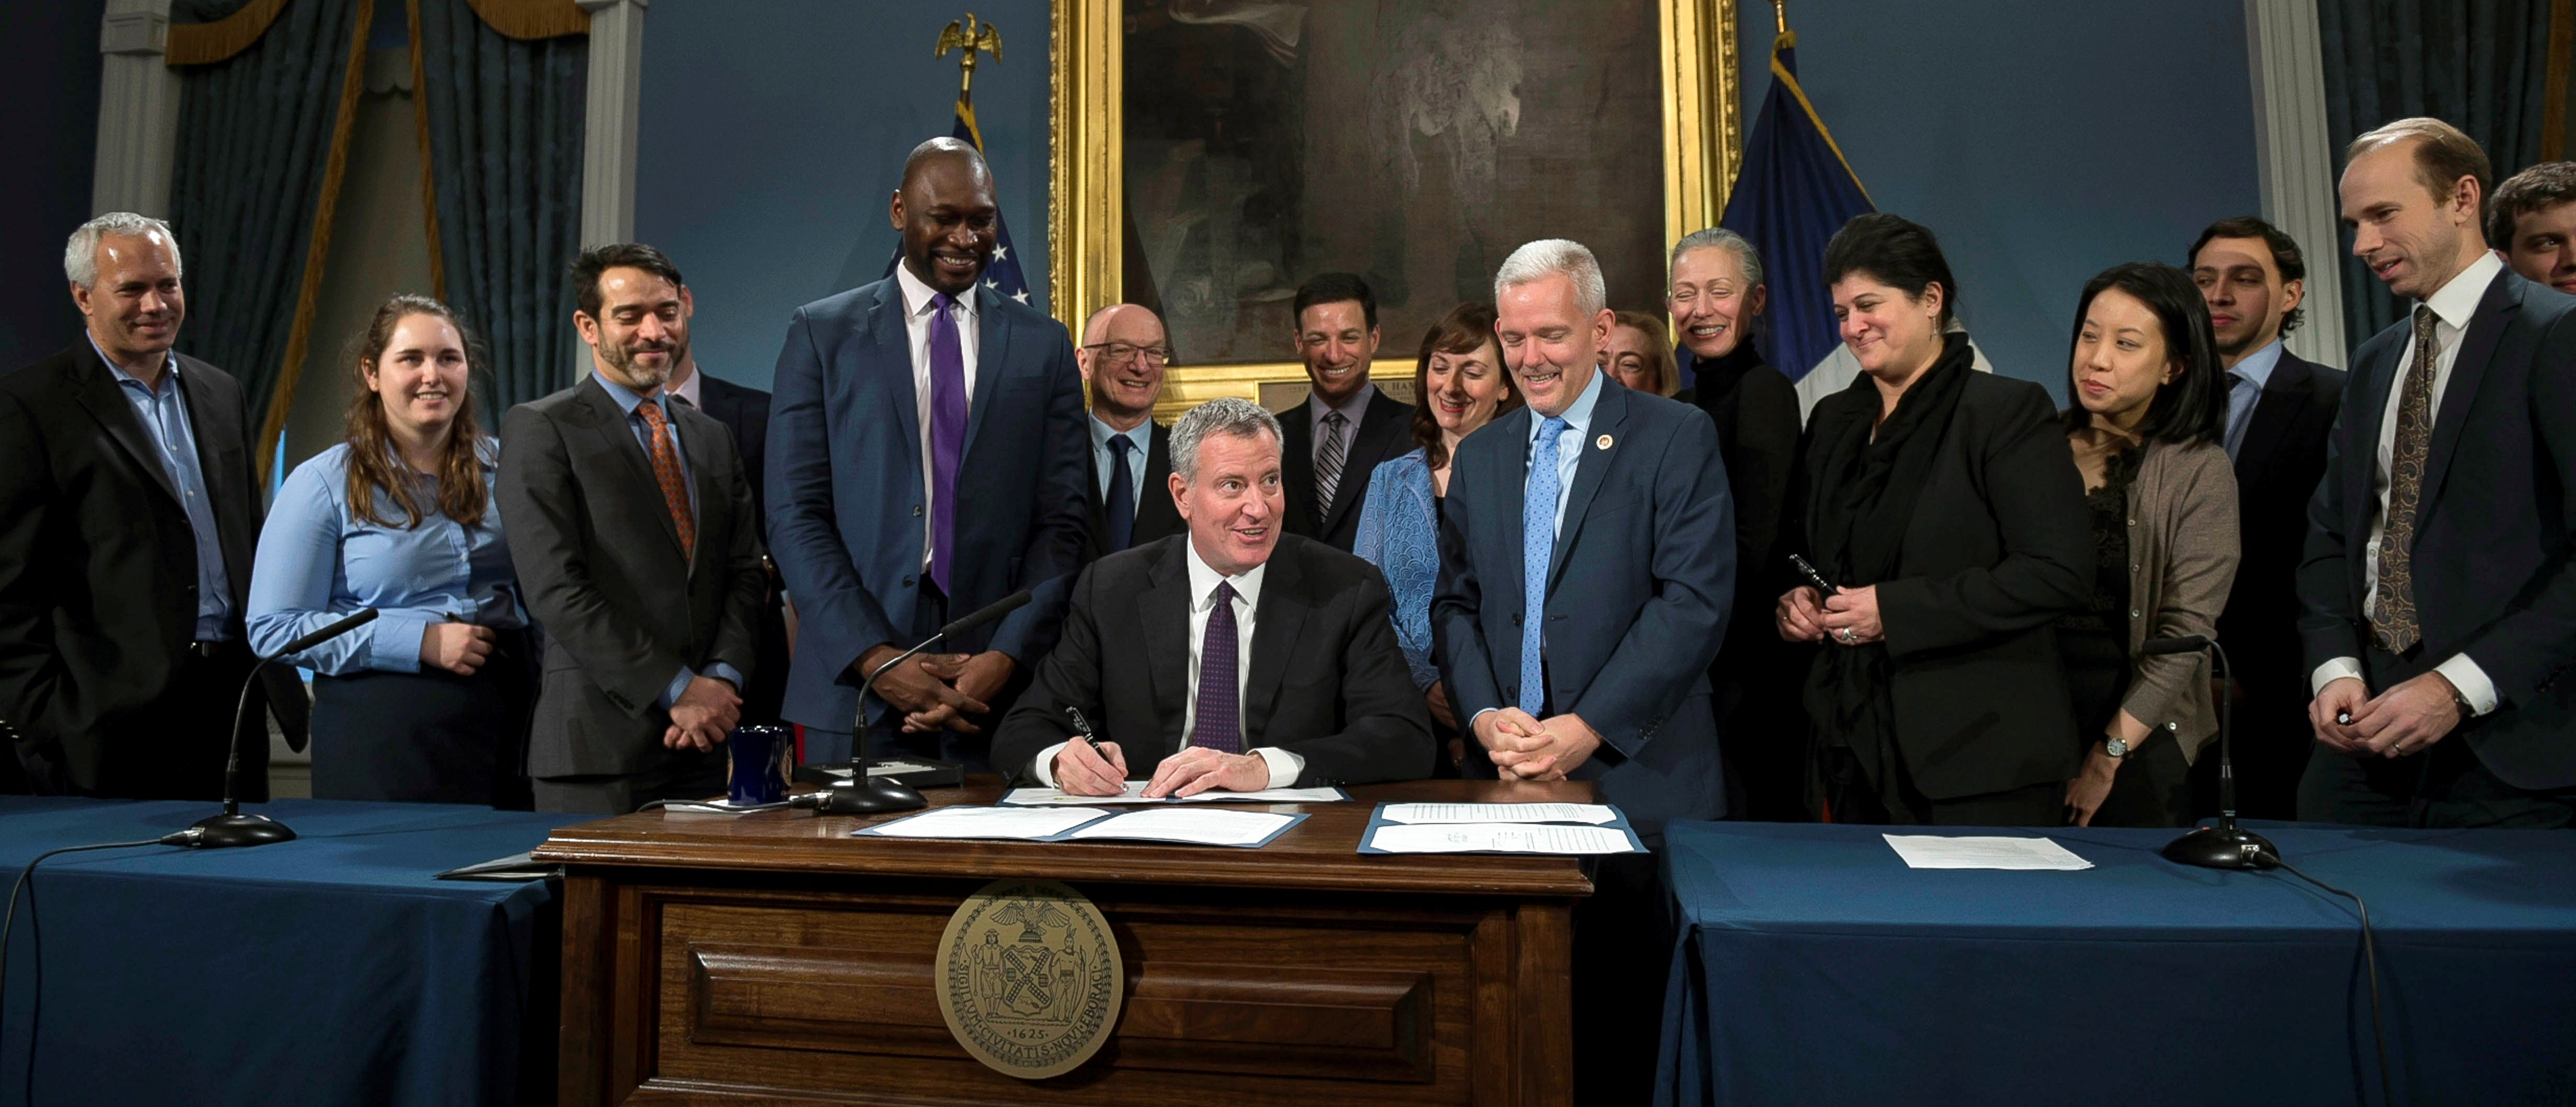 mayor bill de blasio signing bill at desk, surrounded by stakeholders